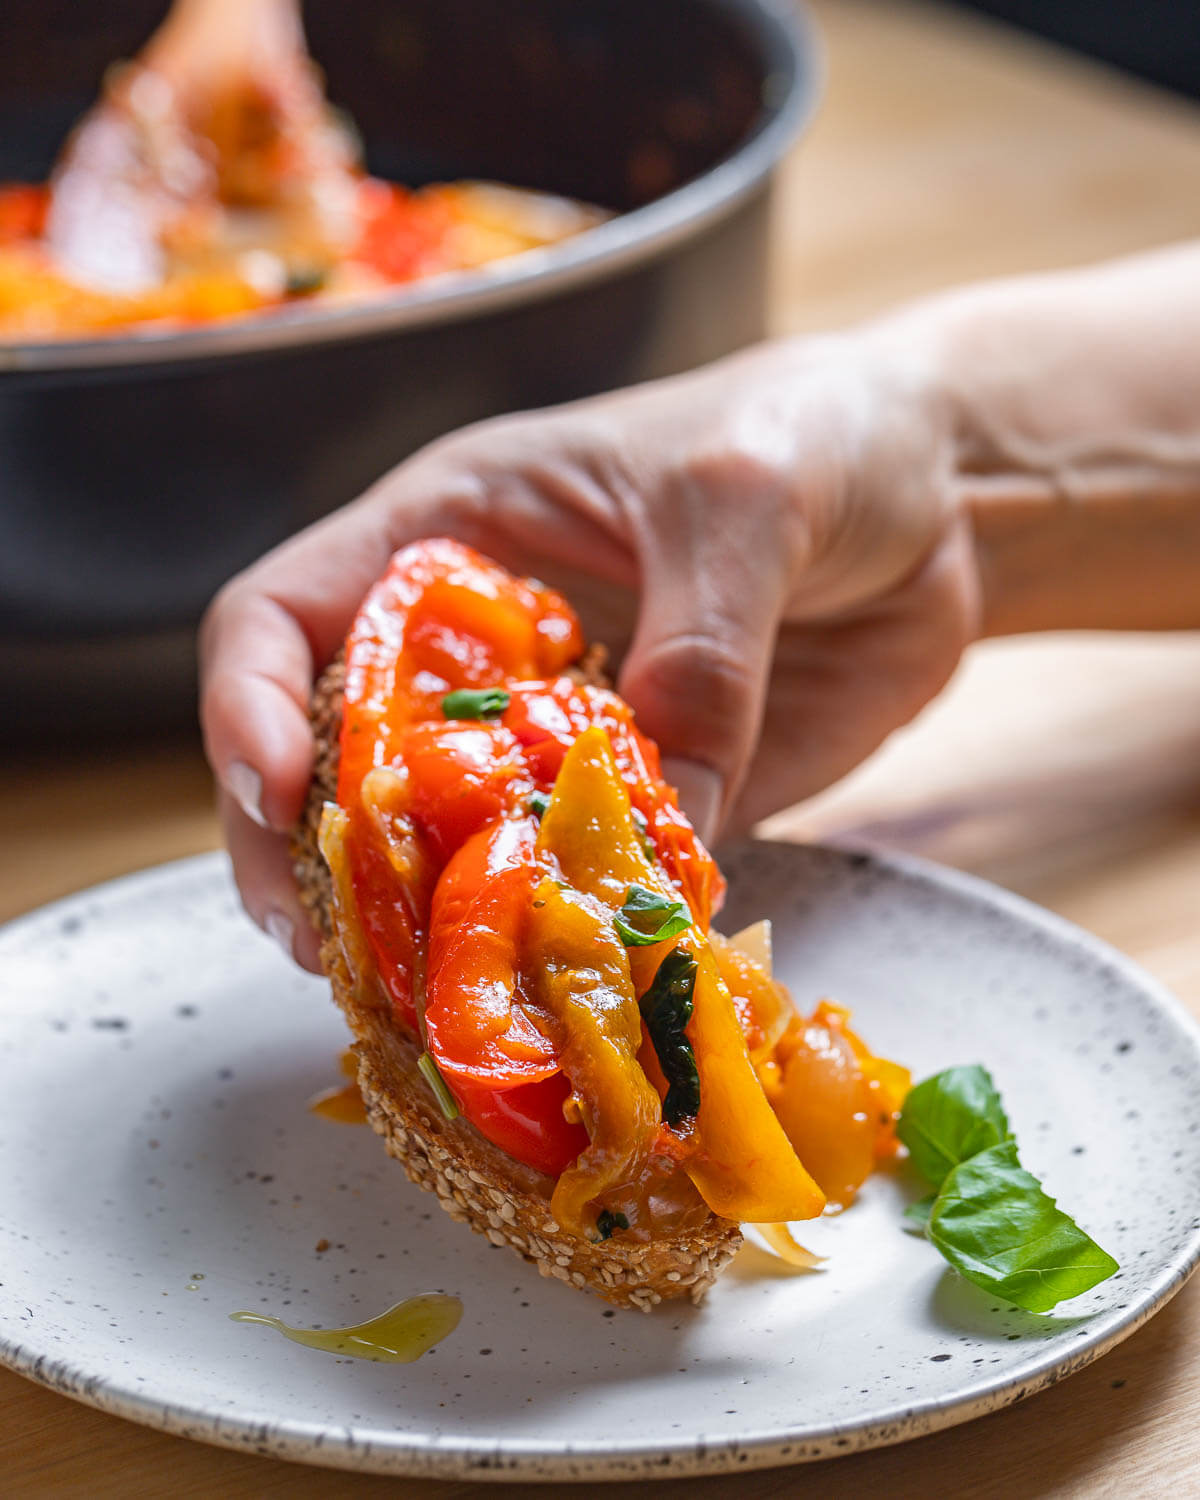 Toaste with peperonata held in hands over white plate.